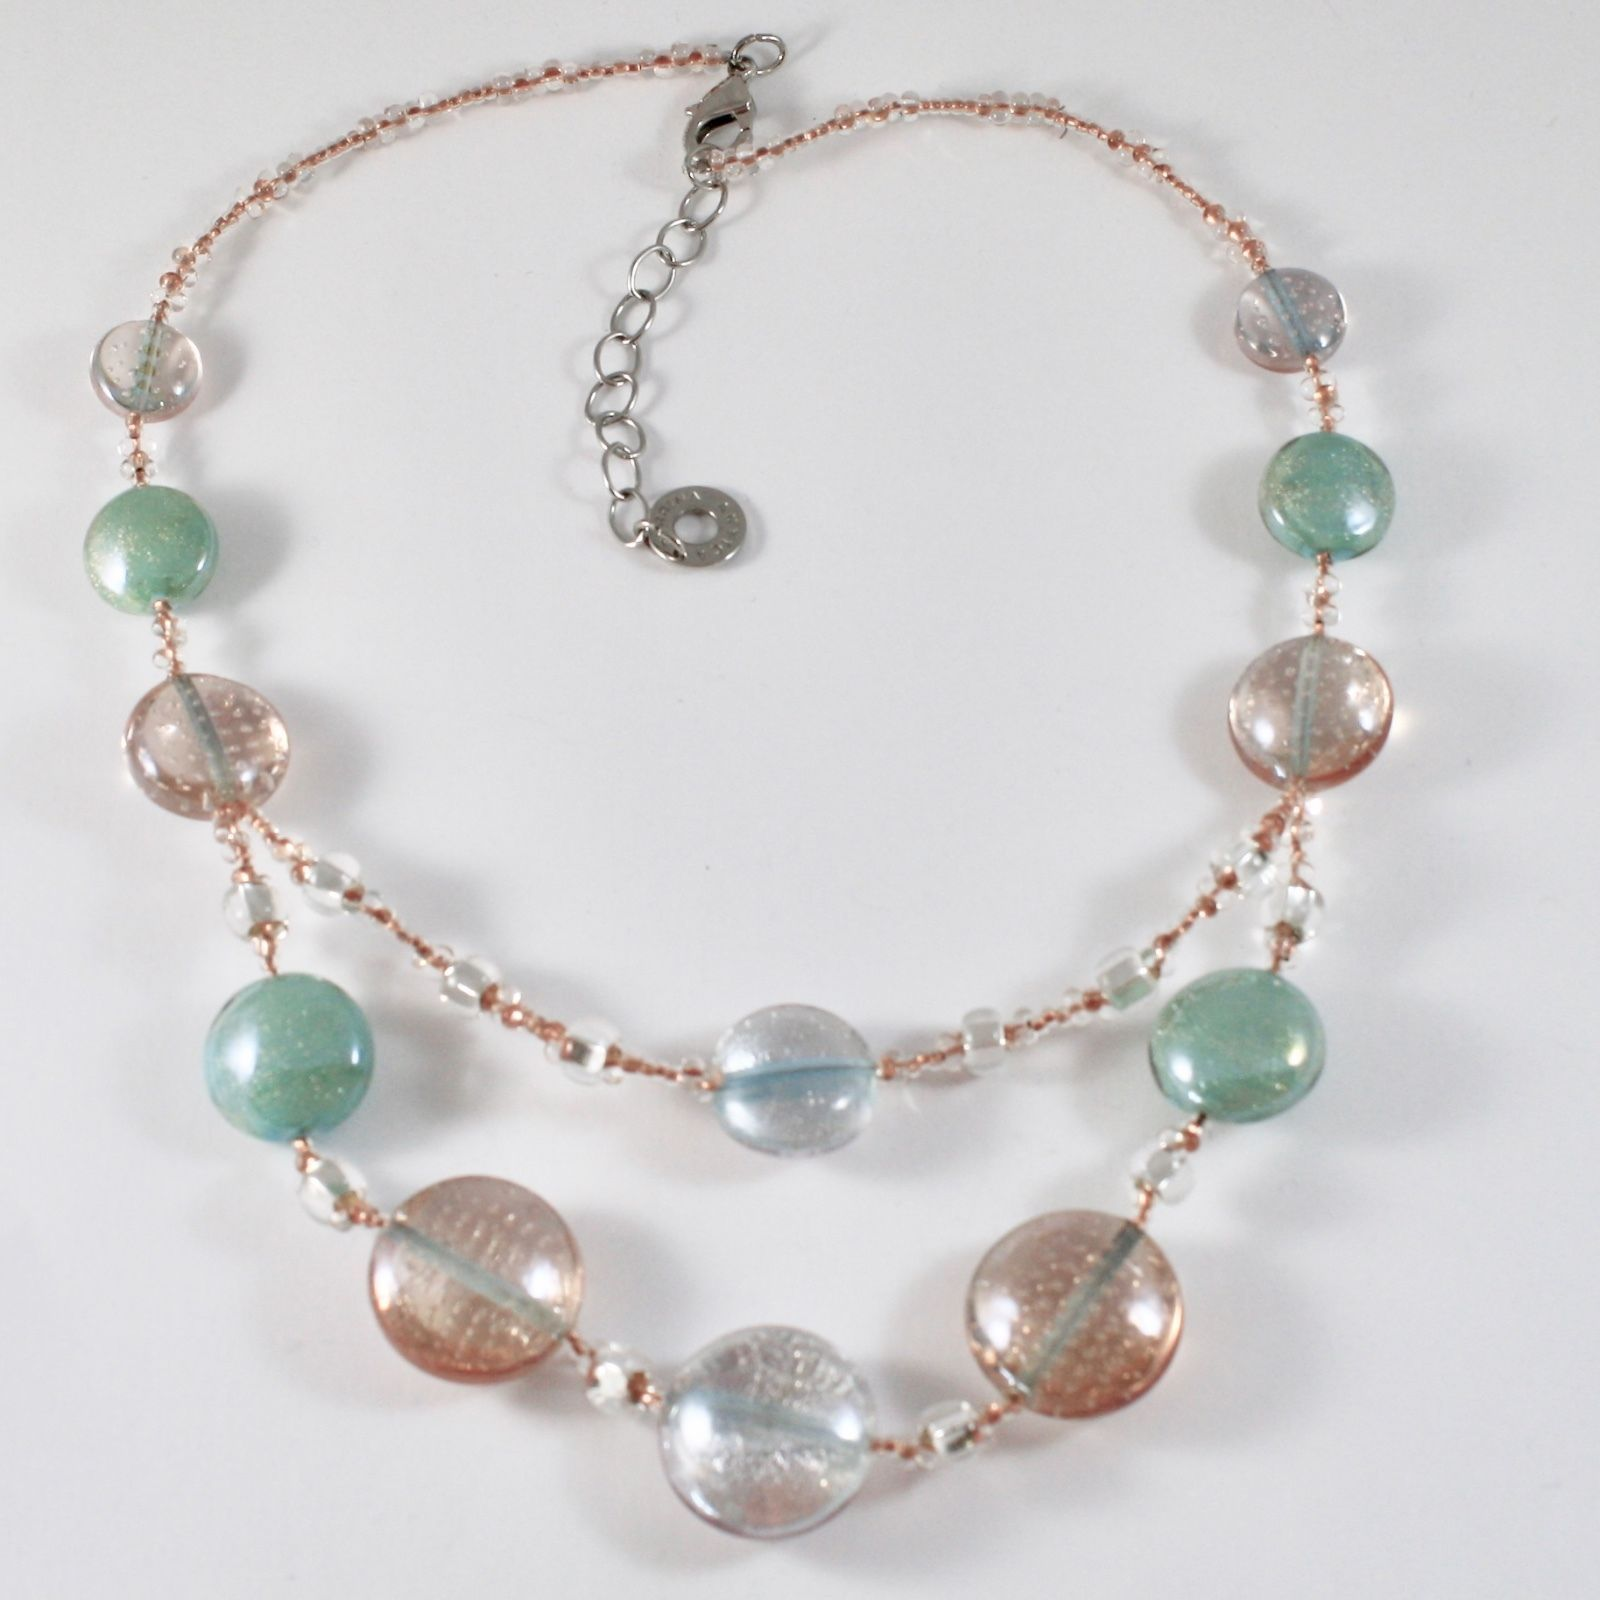 ANTICA MURRINA VENEZIA NECKLACE WITH PINK AND GREEN MURANO GLASS DISCS